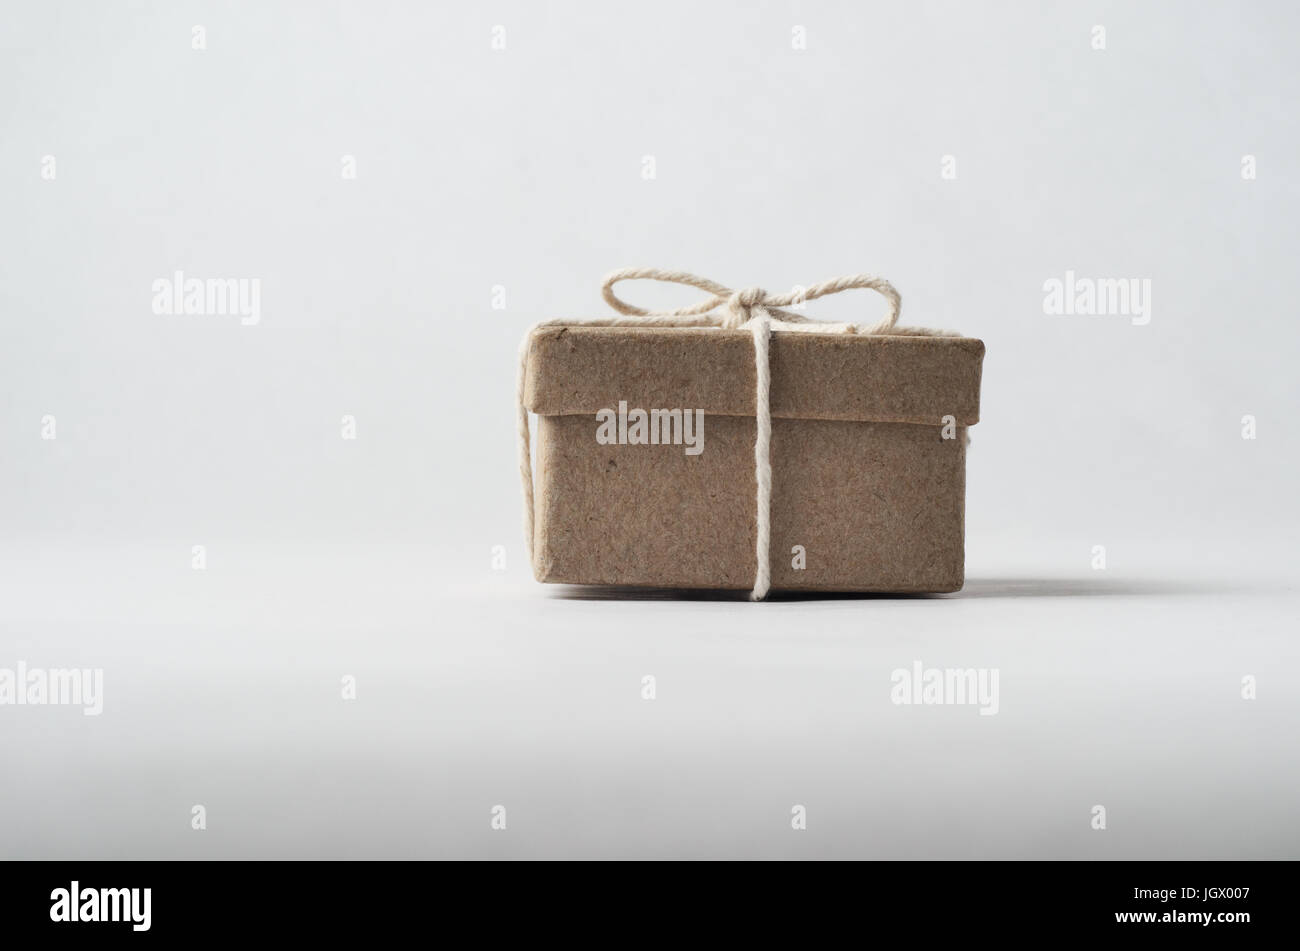 Eye level shot of a simply packaged brown cardboard box with lid, tied to a bow with string.  Off white background. Stock Photo